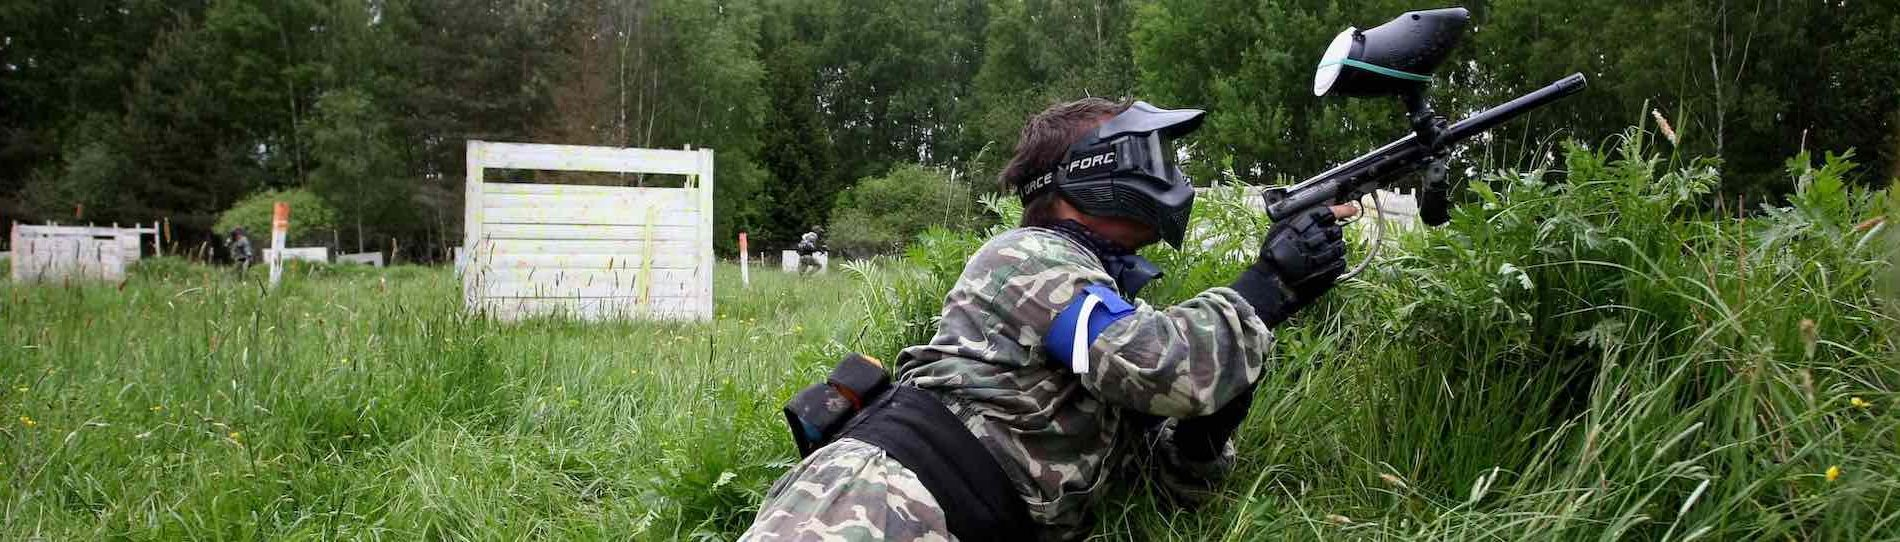 buck playing paintball hiding in grass